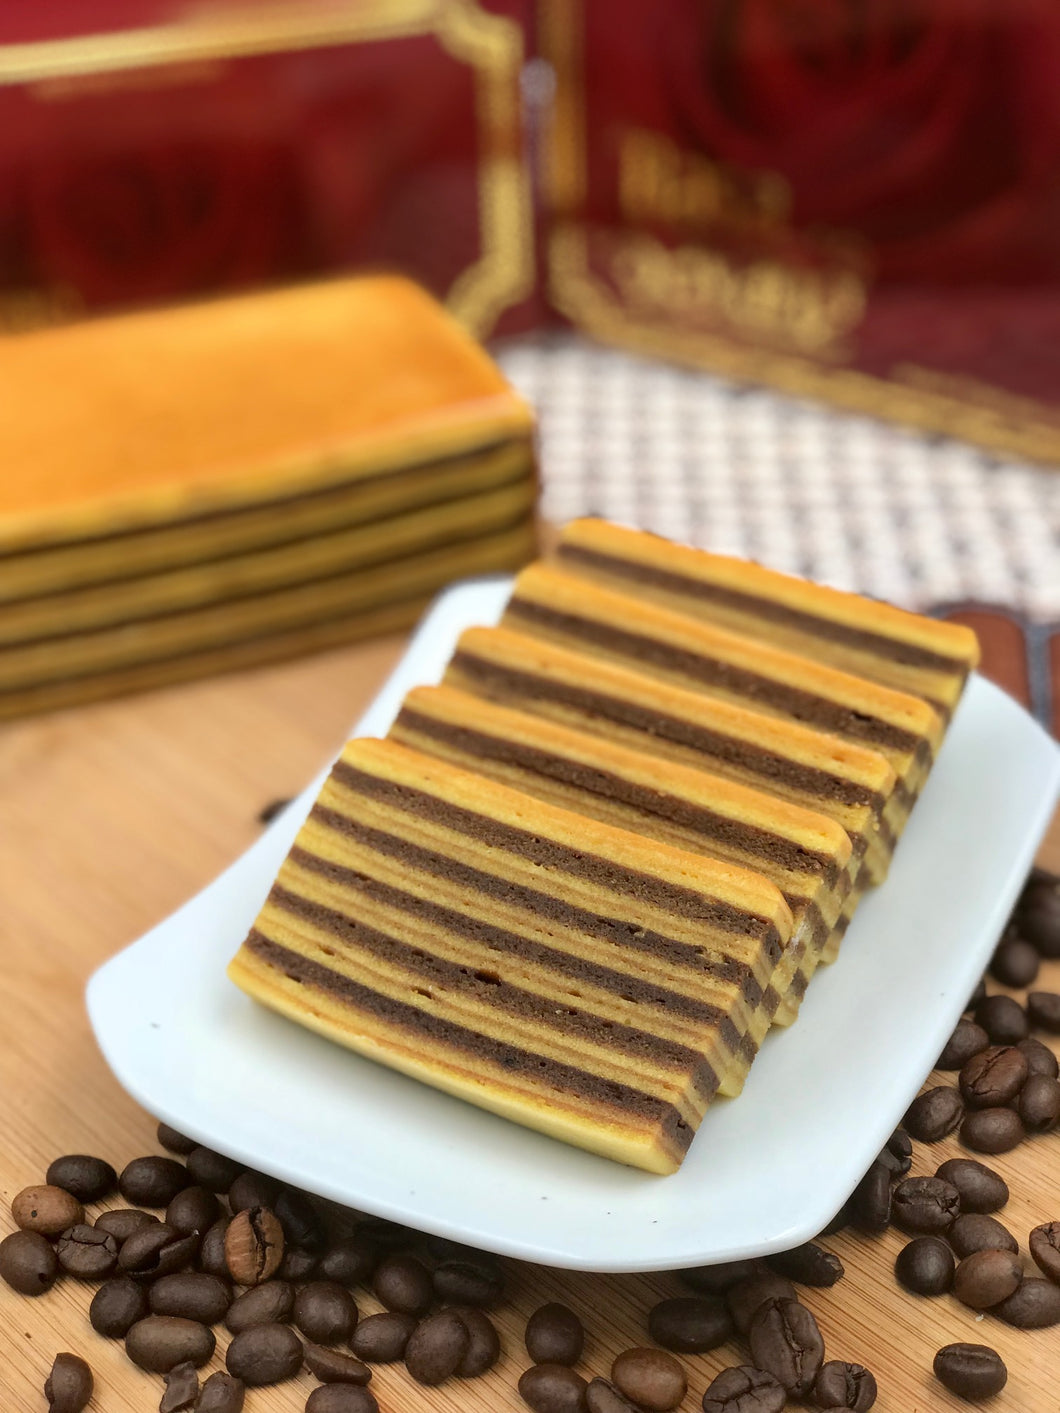 Kue Lapis Coffee